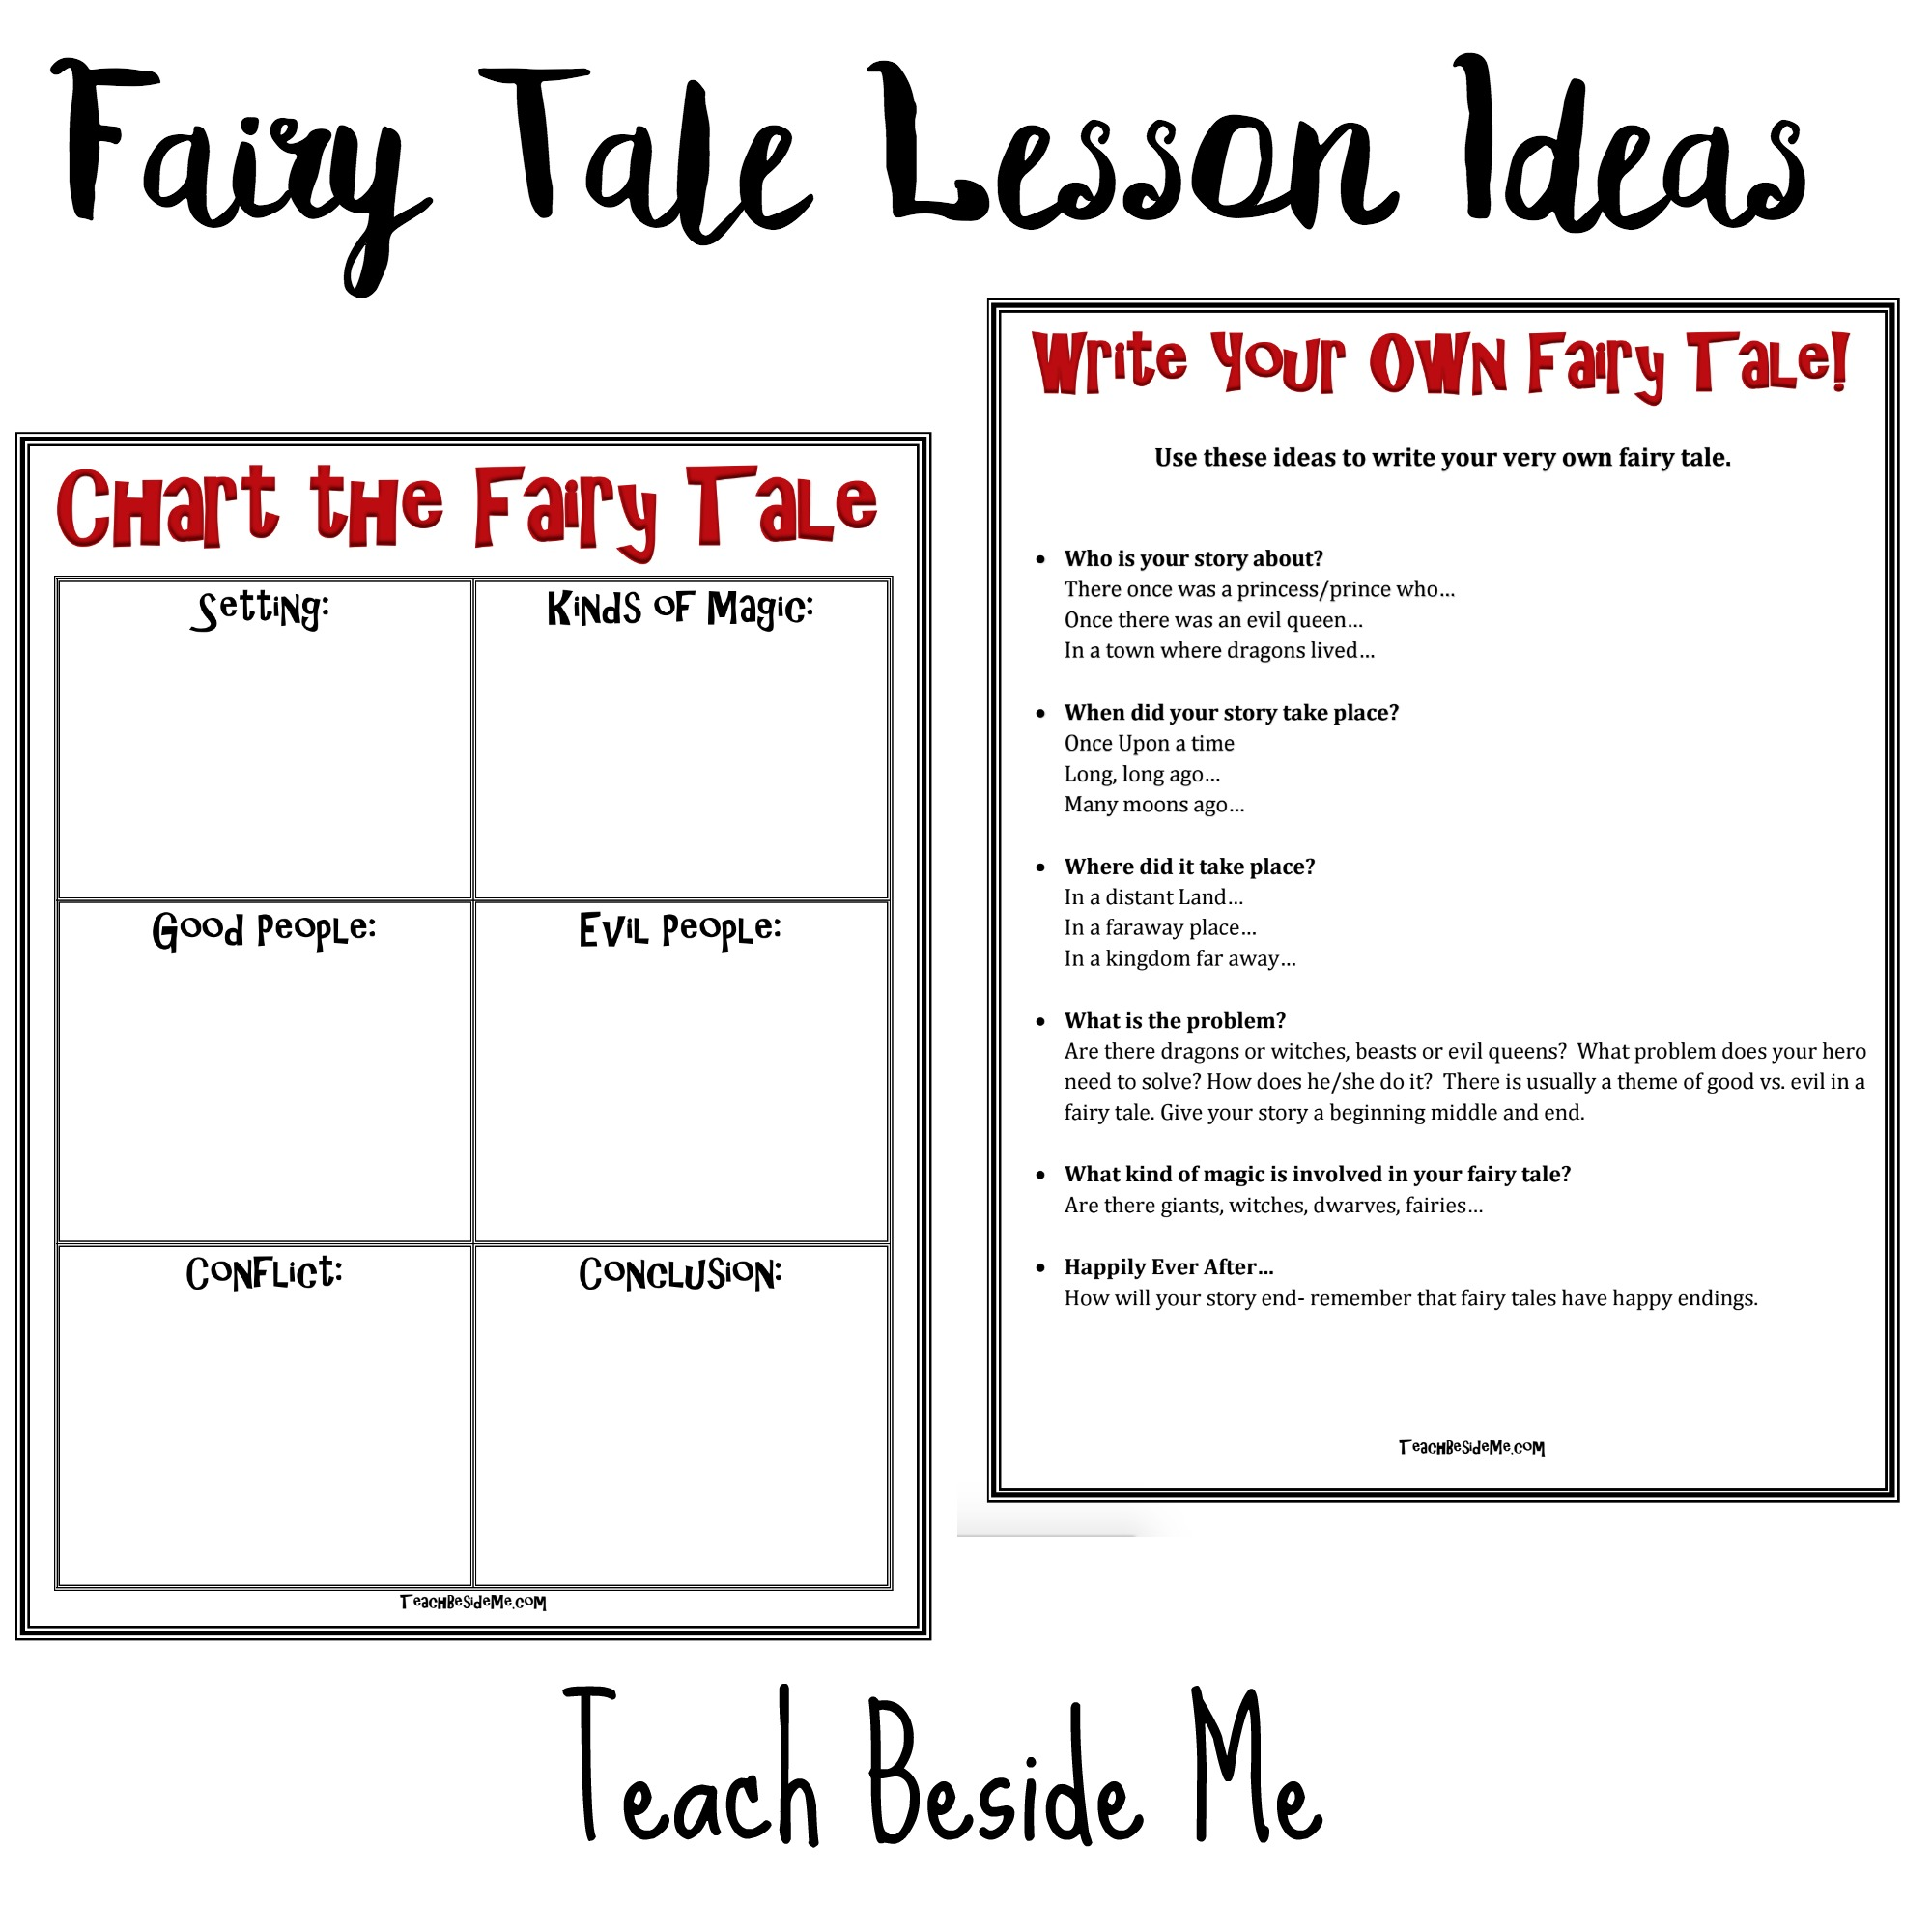 Worksheets Fairy Tale Worksheets fairy tale lesson ideas with hans christian andersen teach beside me